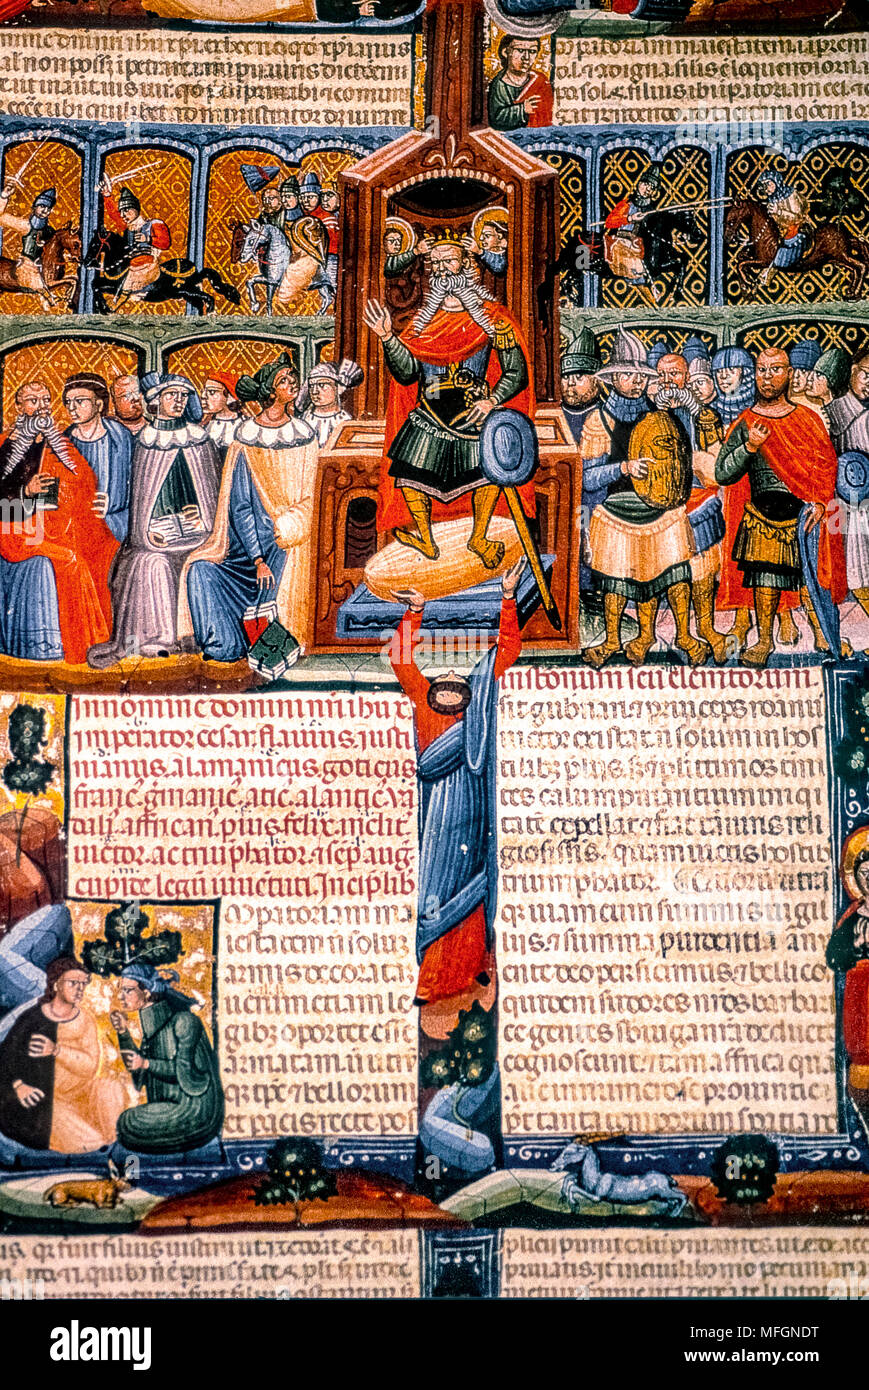 Italy Forlì Cesena - Biblioteca Malatestiana -the illuminated codes ' Institutiones of Giustiniano - depiction of Justinian and his court - about 1330 - Stock Image